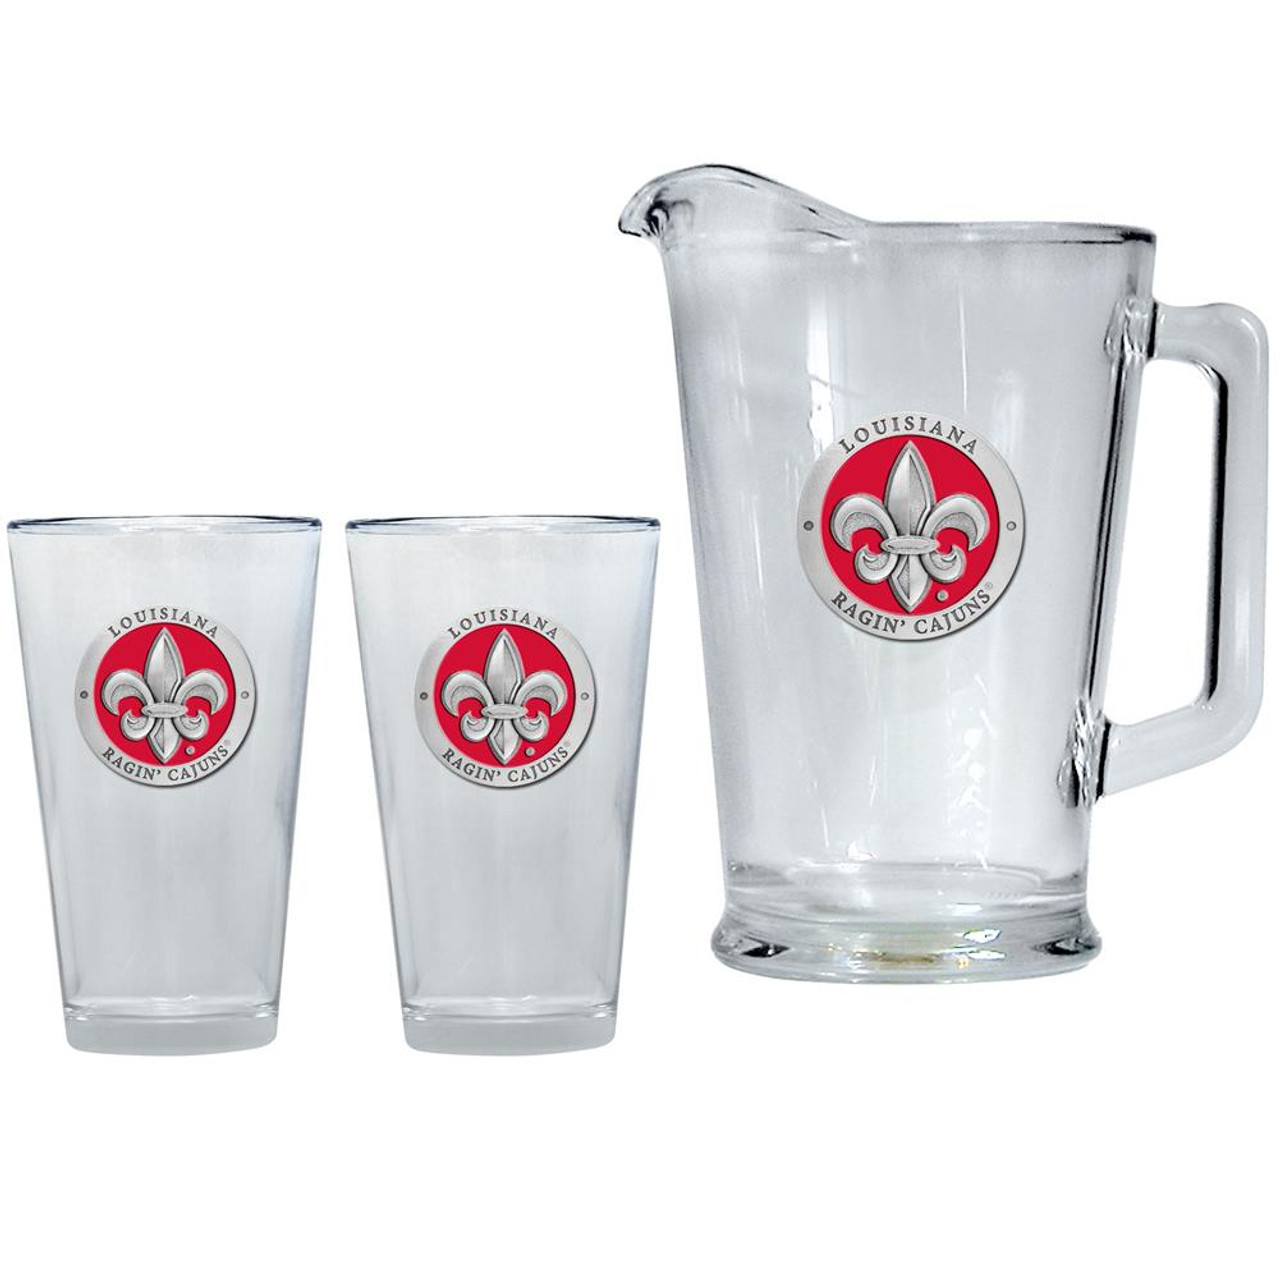 Louisiana Lafayette Pitcher and 2 Pint Glass Set Beer Set